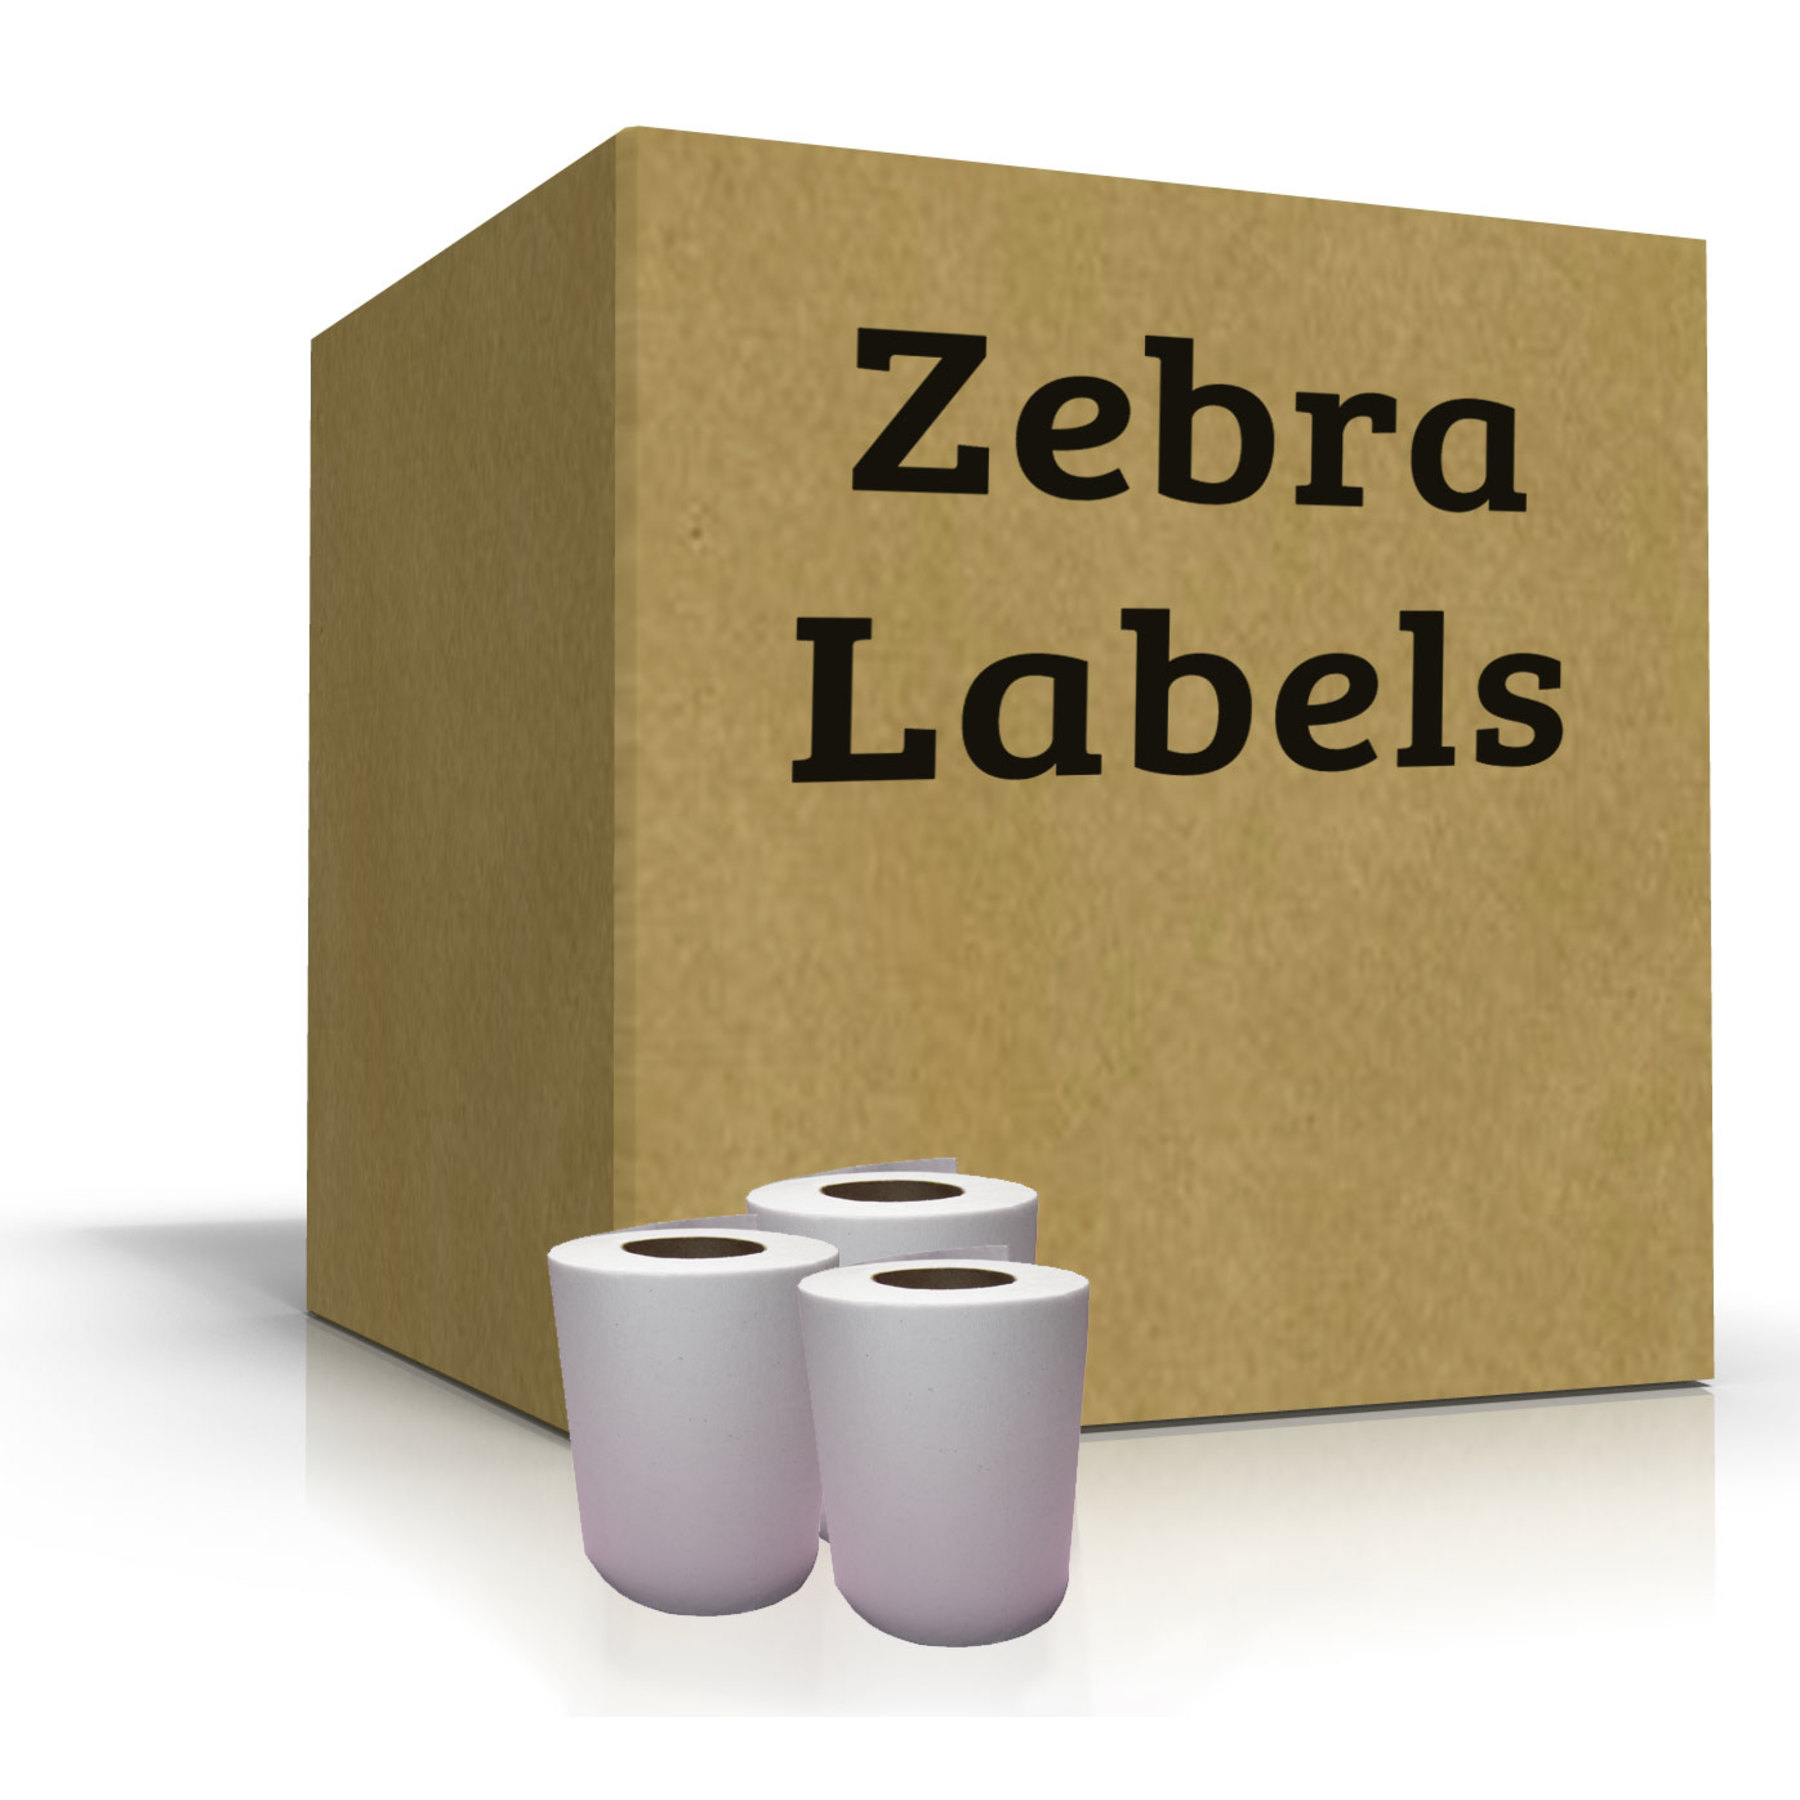 Zebra Labels - oloom.